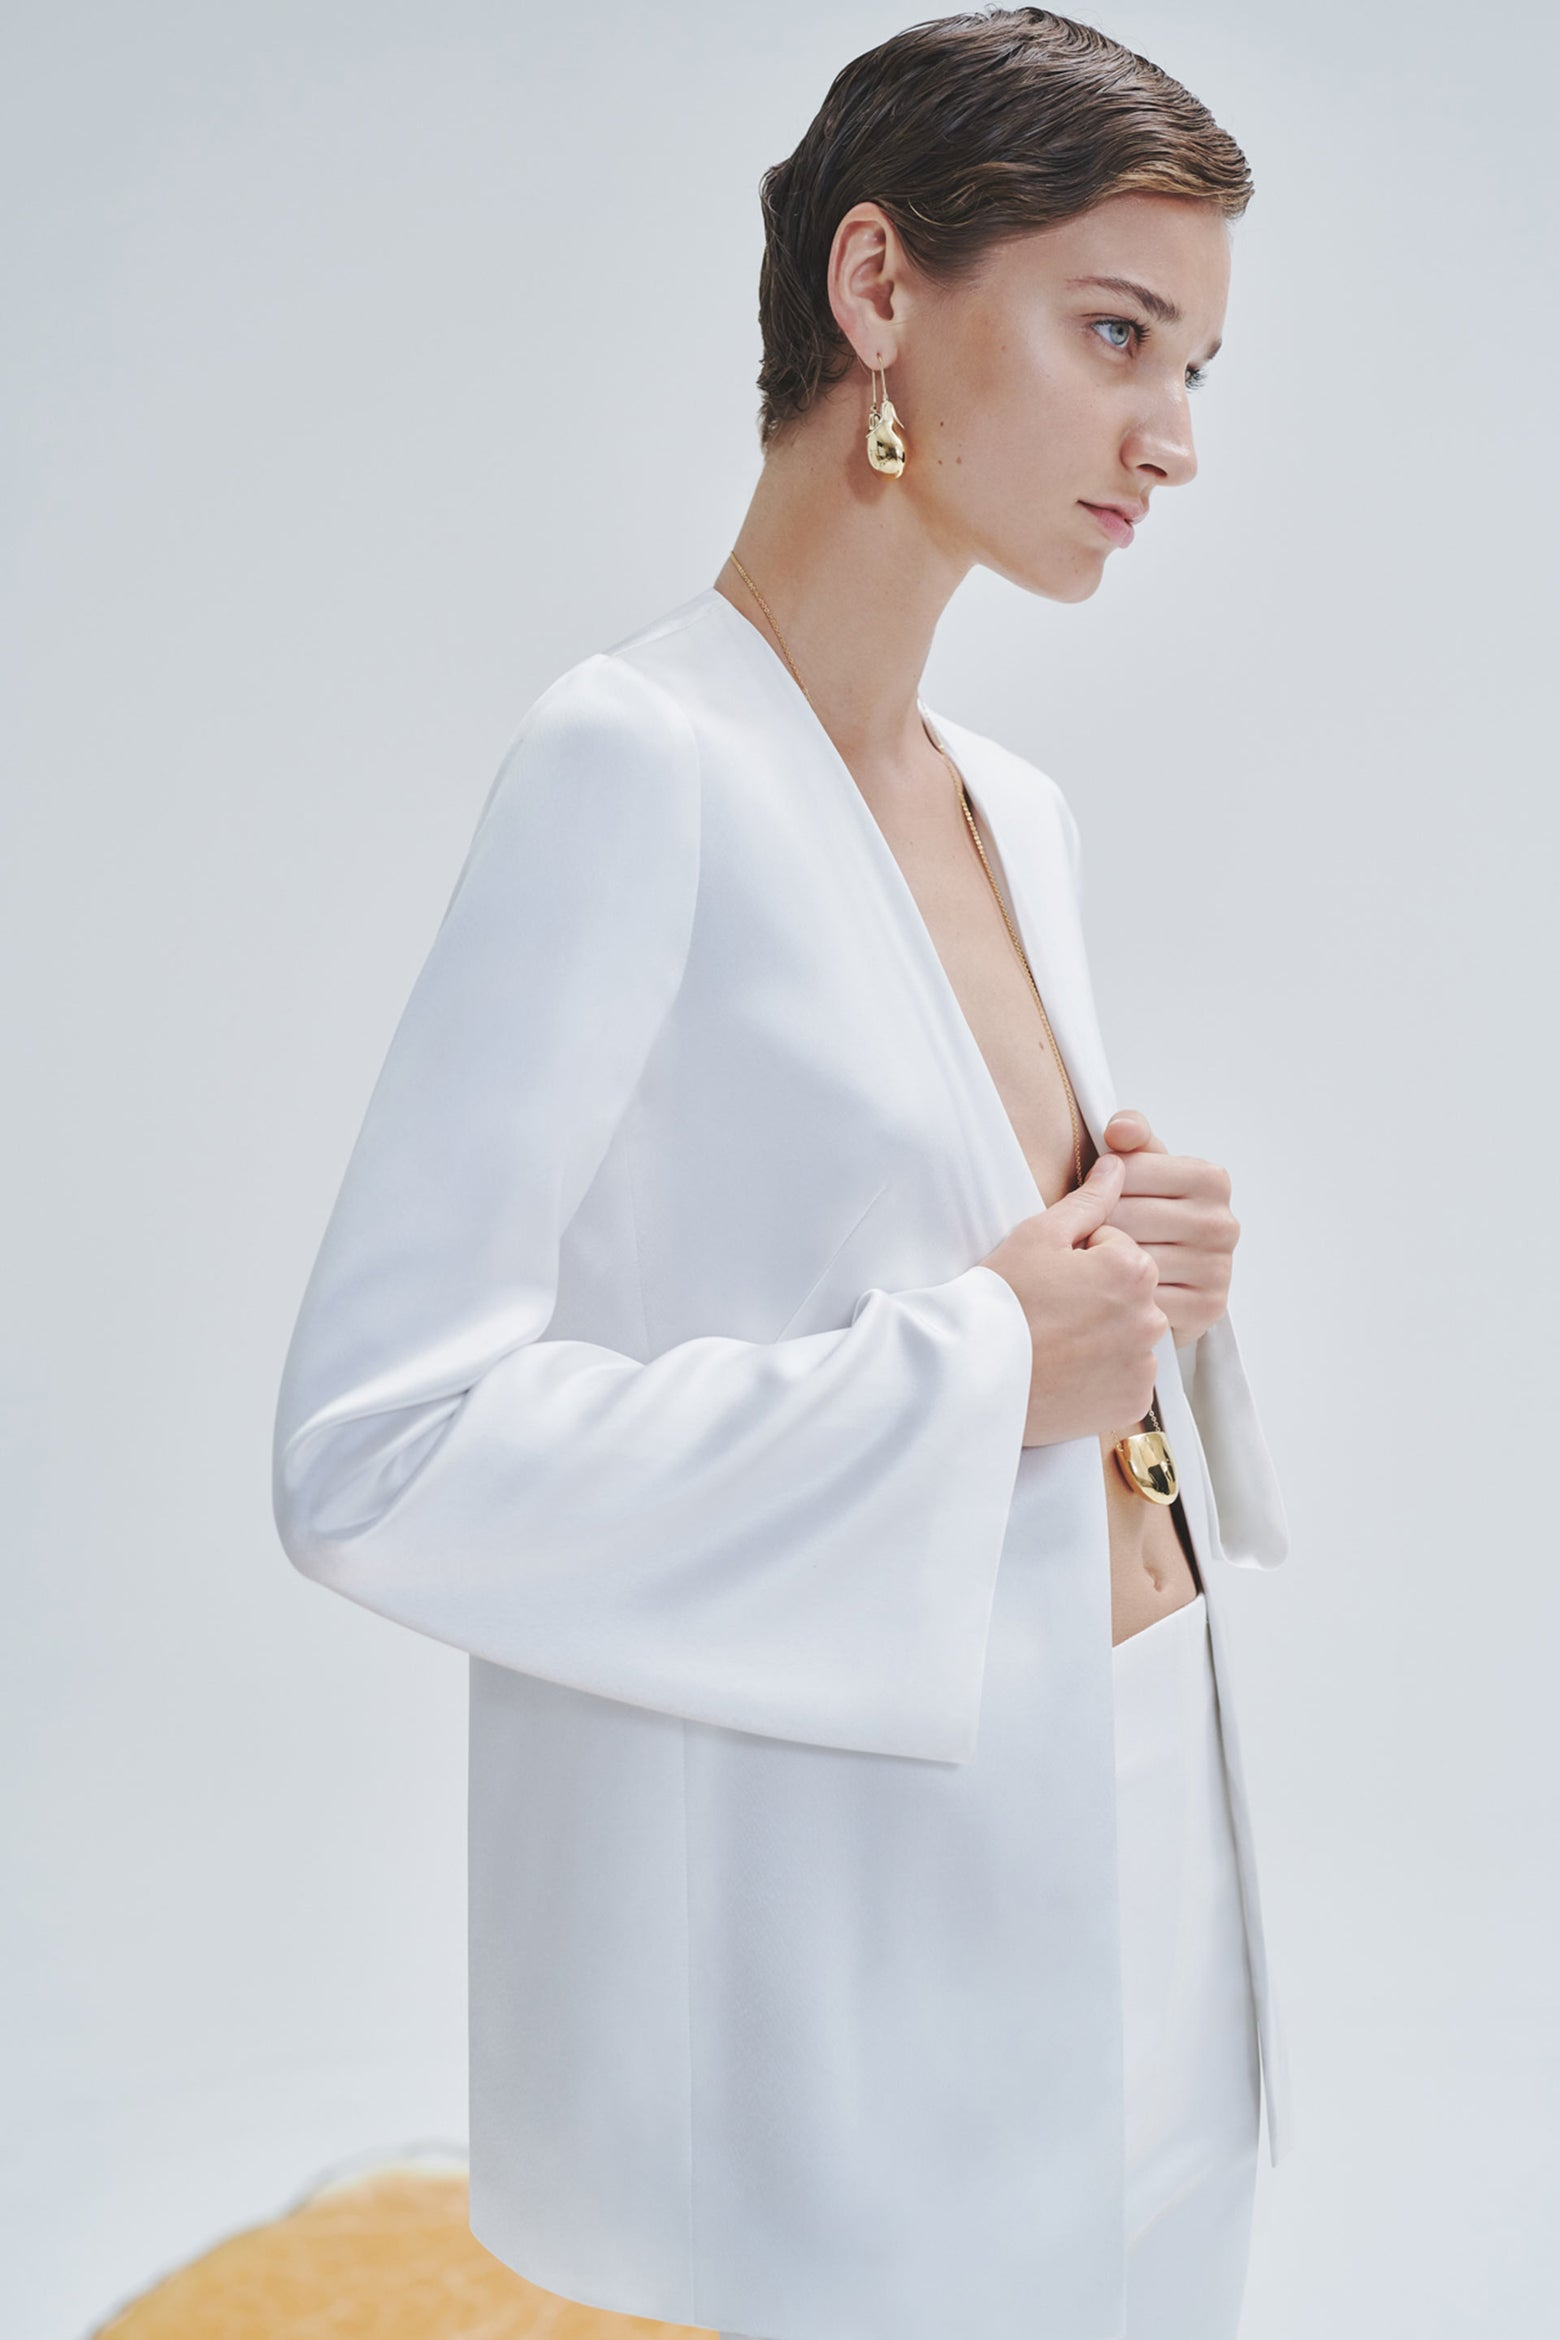 Blenheim Satin Bridal Jacket